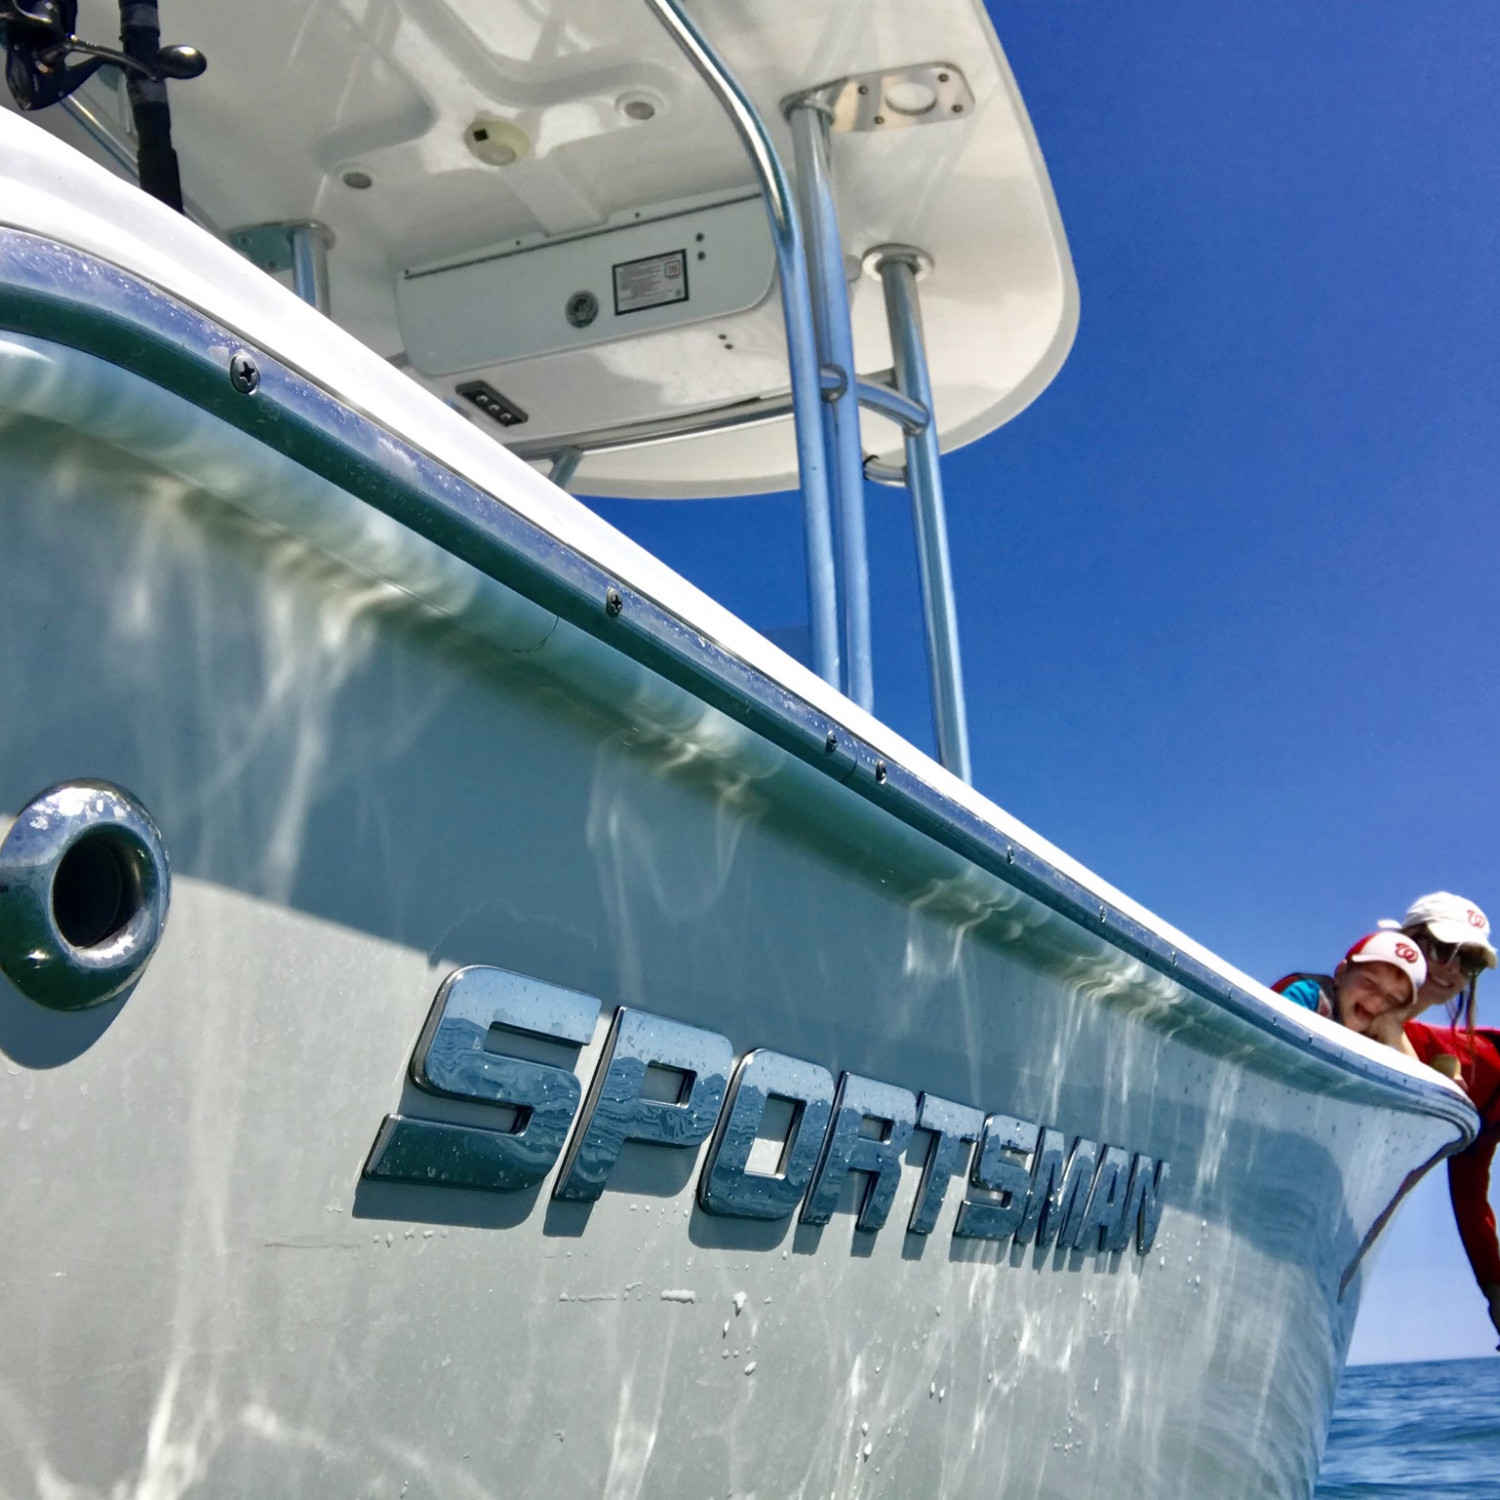 Title: Florida Dayz - On board their Sportsman Heritage 211 Center Console - Location: Just offshore near Sebastian Inlet, FL.. Participating in the Photo Contest #SportsmanApril2018